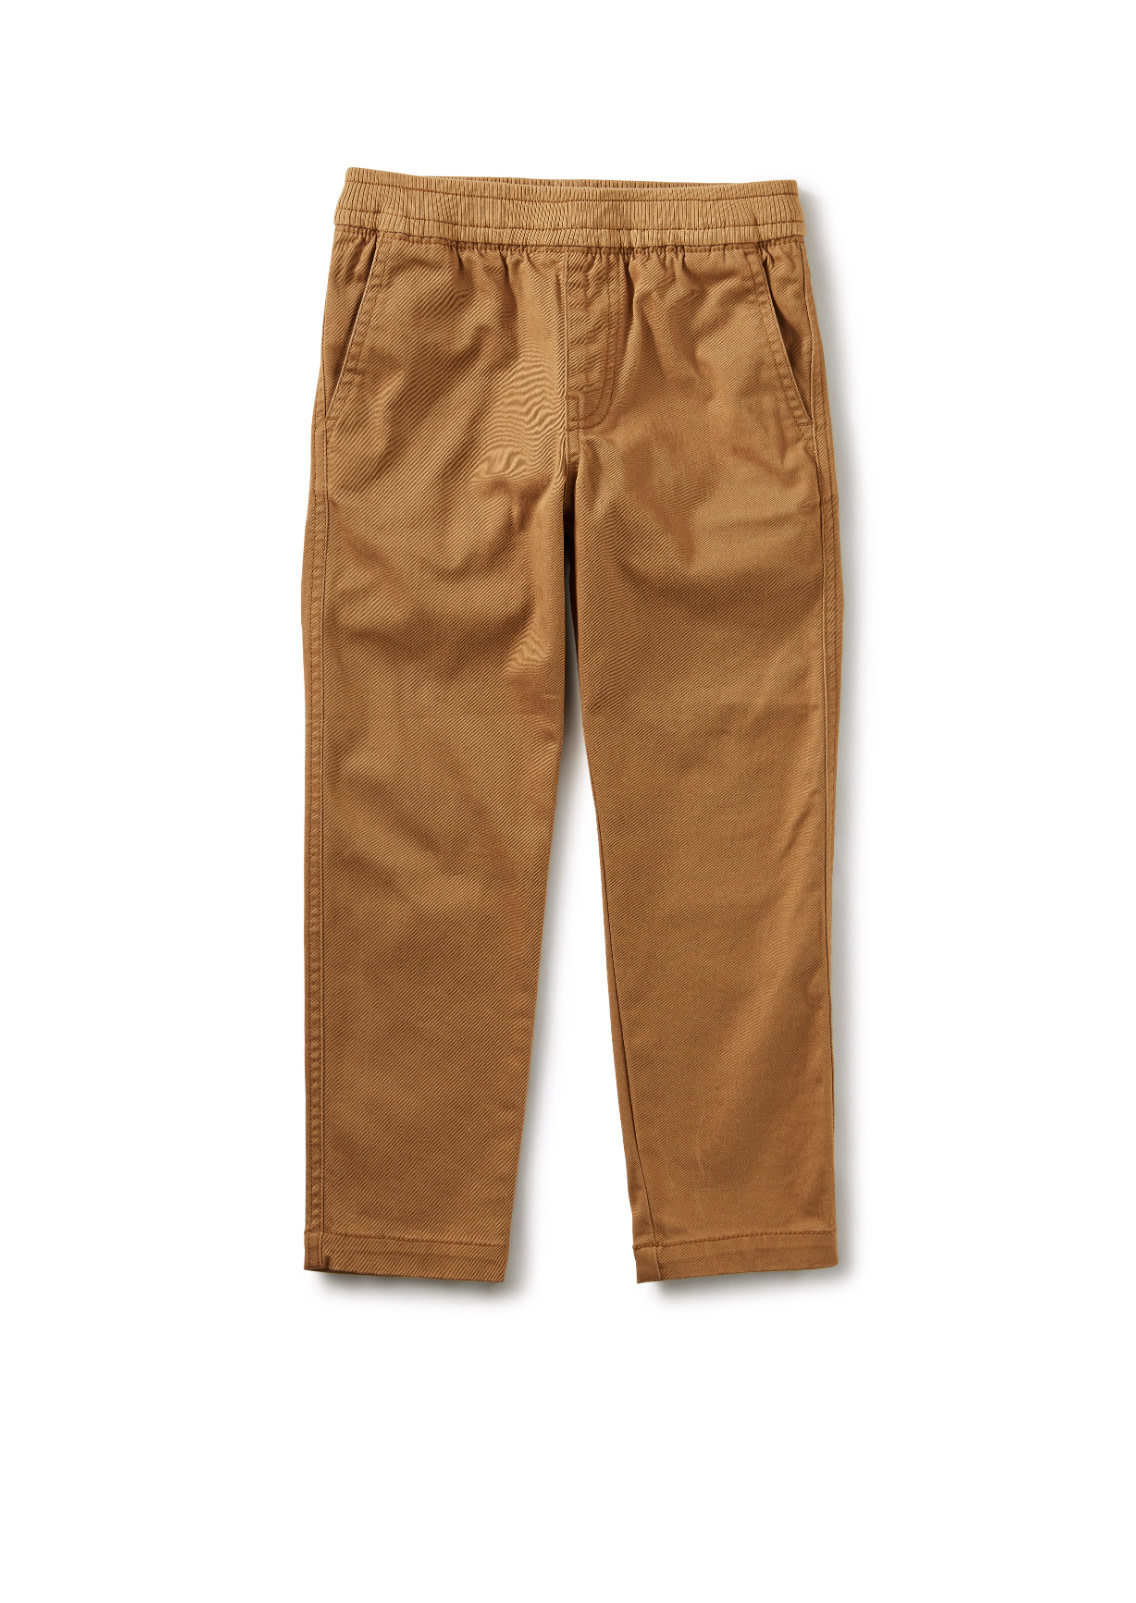 Tea Collection Whole Wheat Twill Pant